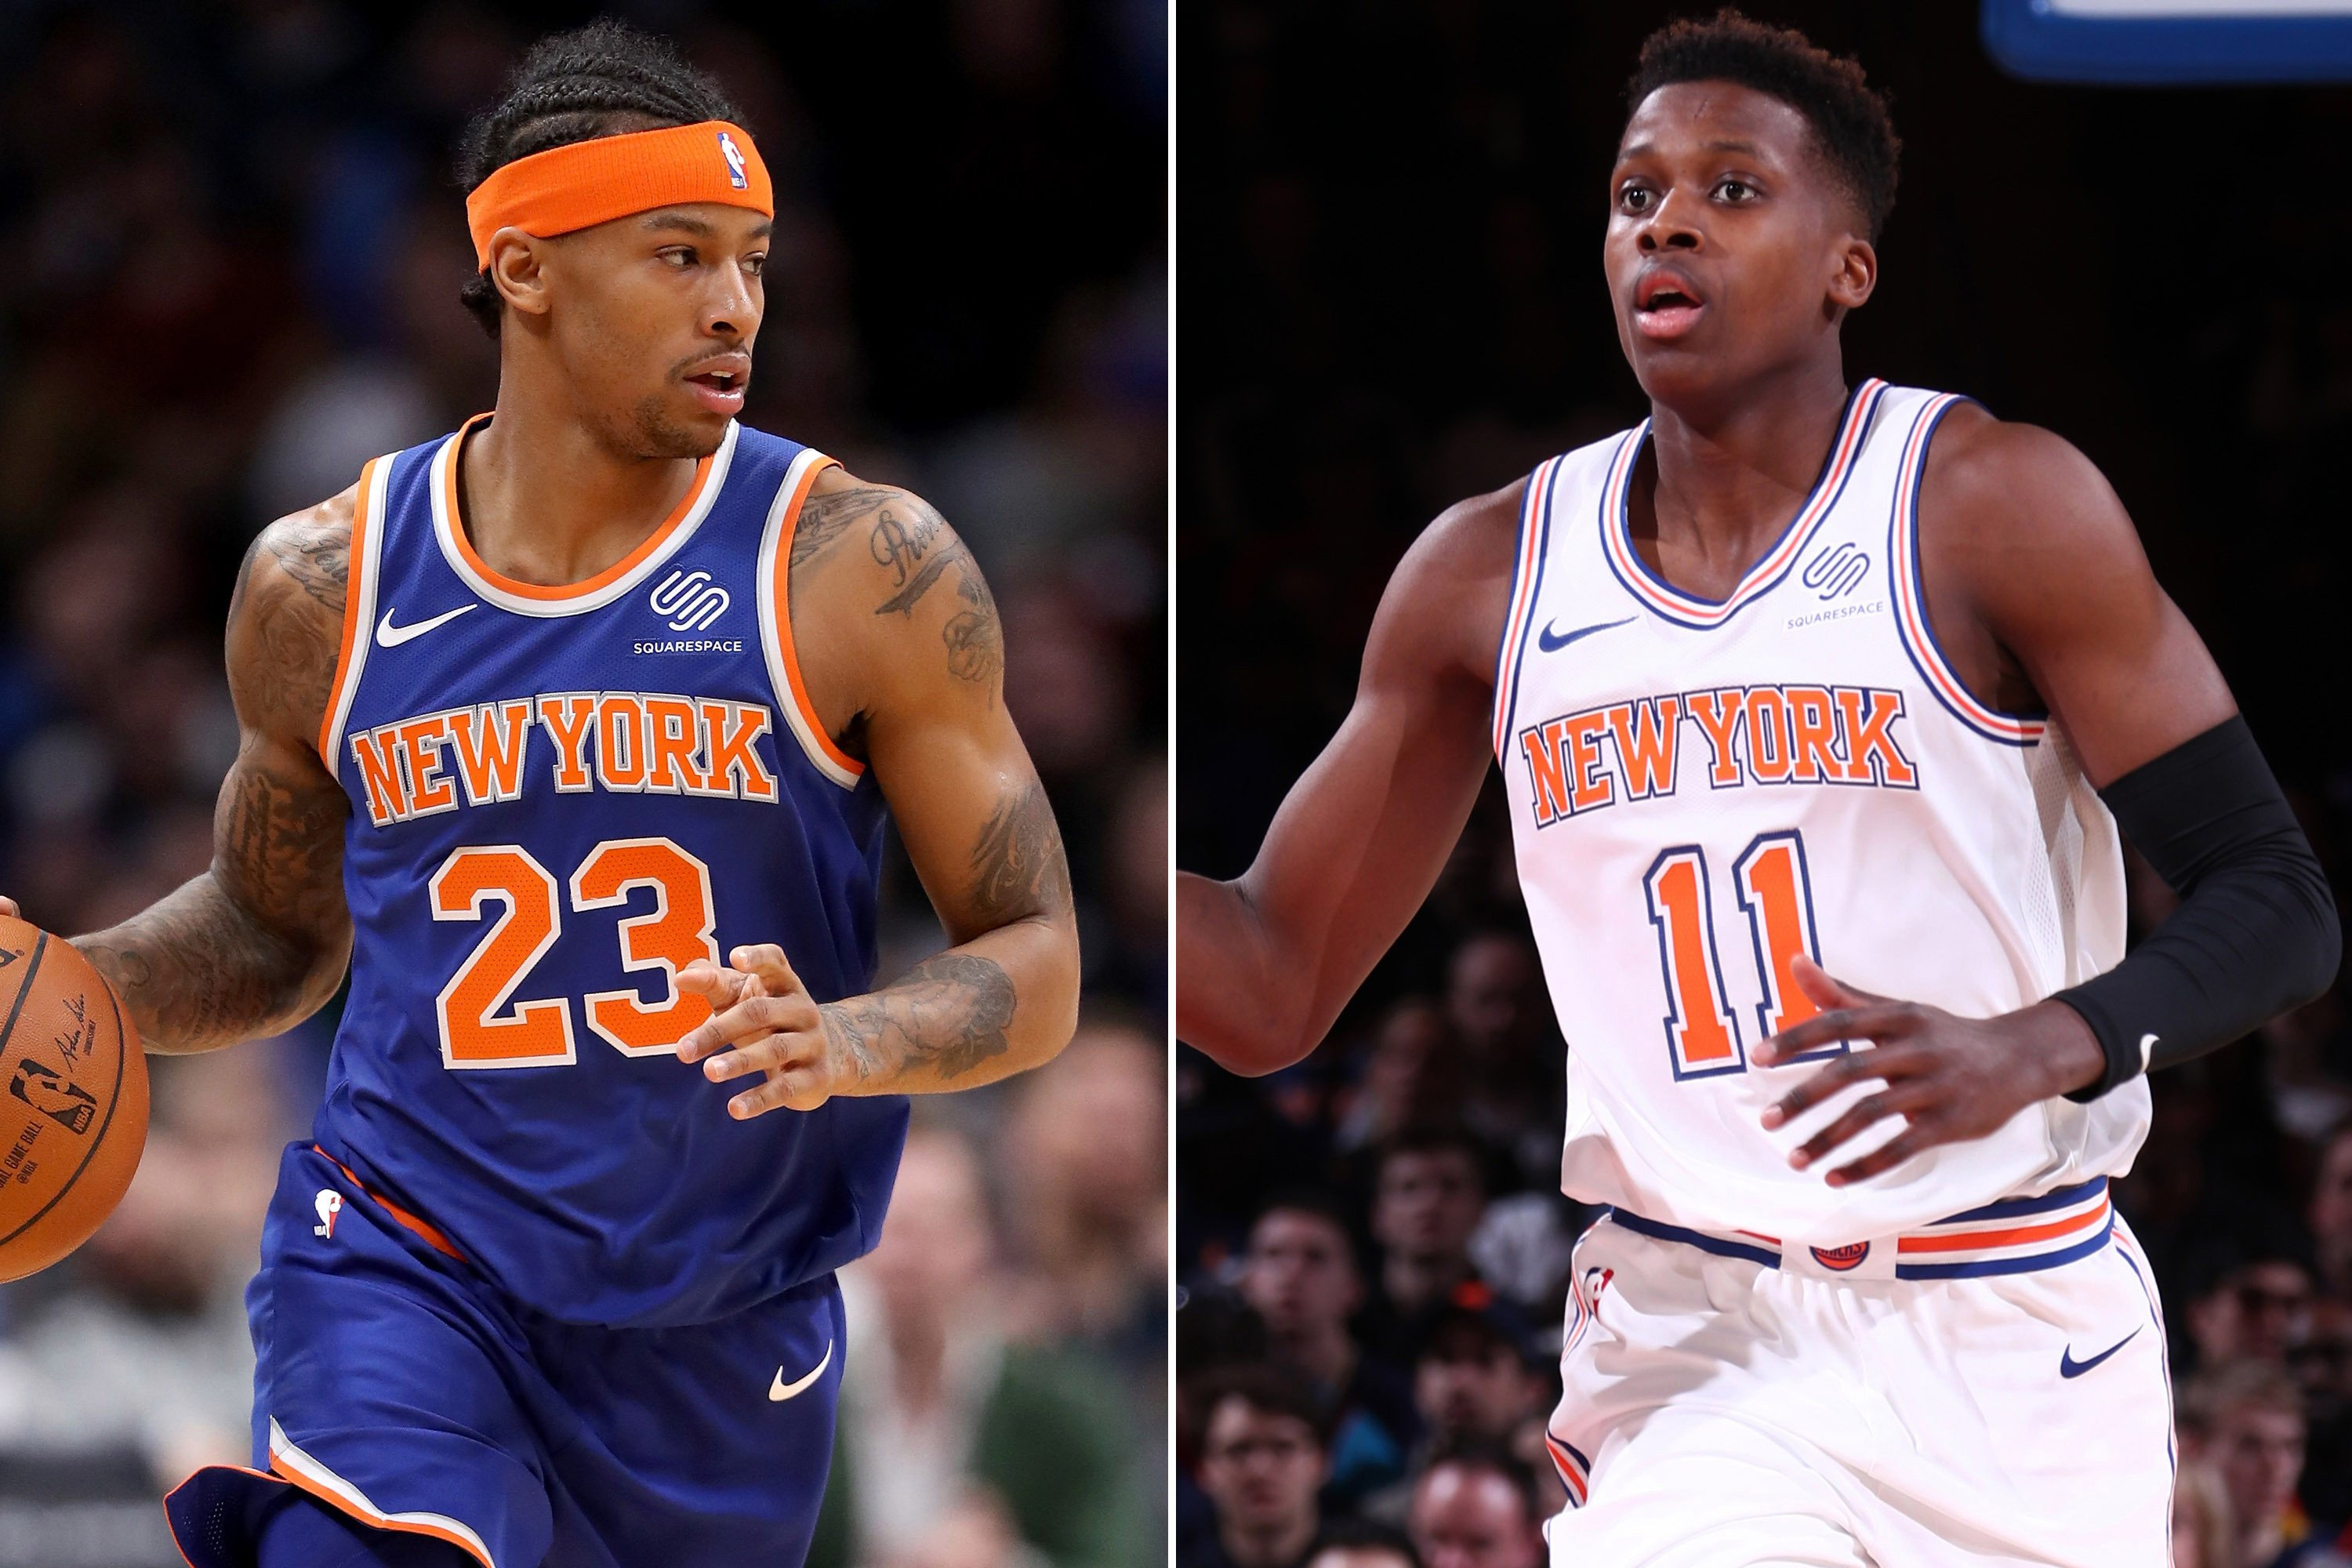 A move that would benefit Trey Burke and Frank Ntilikina